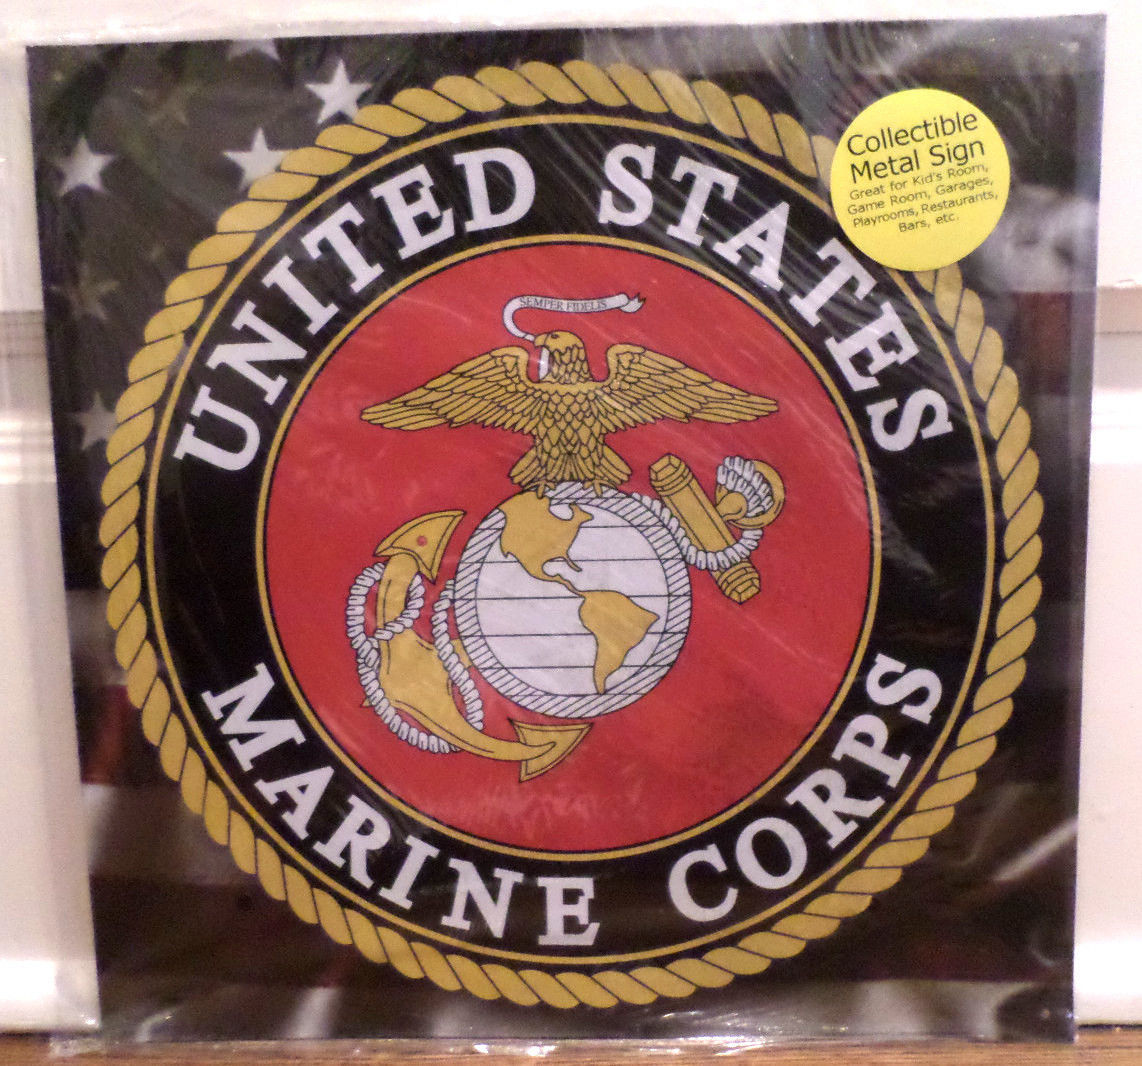 Military Man Cave Signs : United states marine corps round metal tin sign garage man